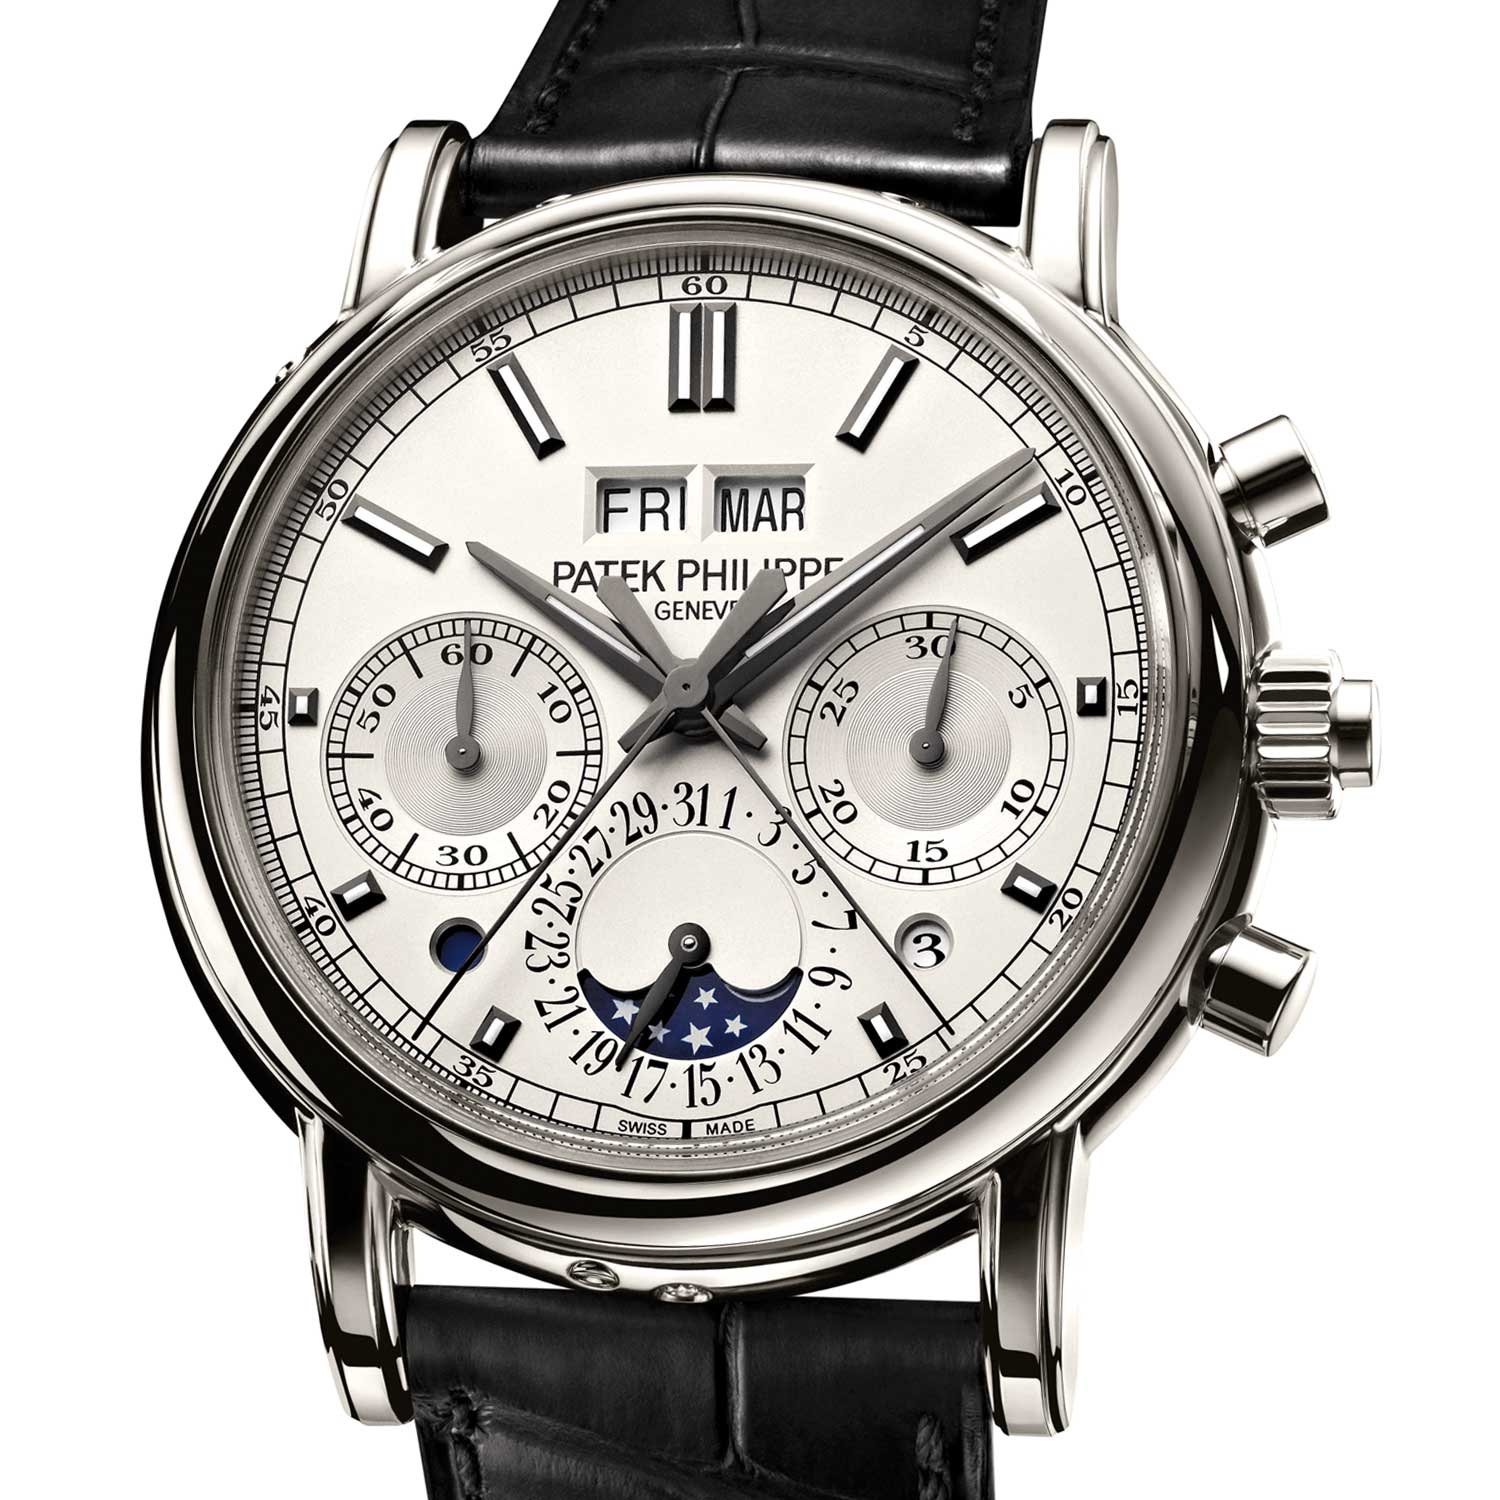 The Patek Philippe Split Second Perpetual Calendar Chronograph was lauched with the 5204P-001 in 2012; the watch was the first to be powered by the CH 29-535 PS Q